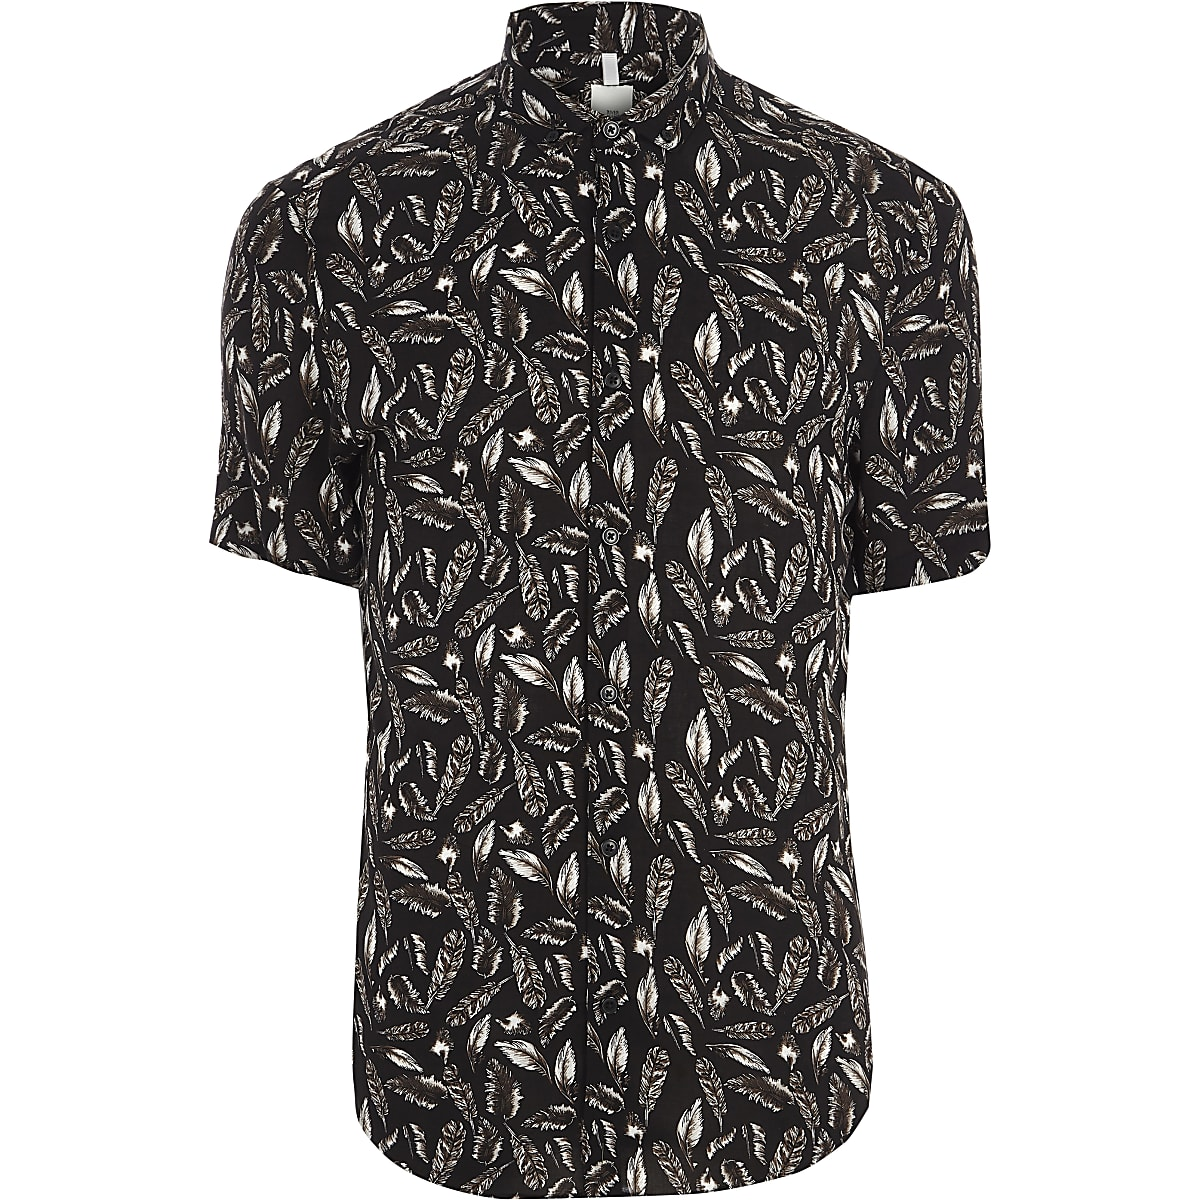 Black feather slim fit short sleeve shirt